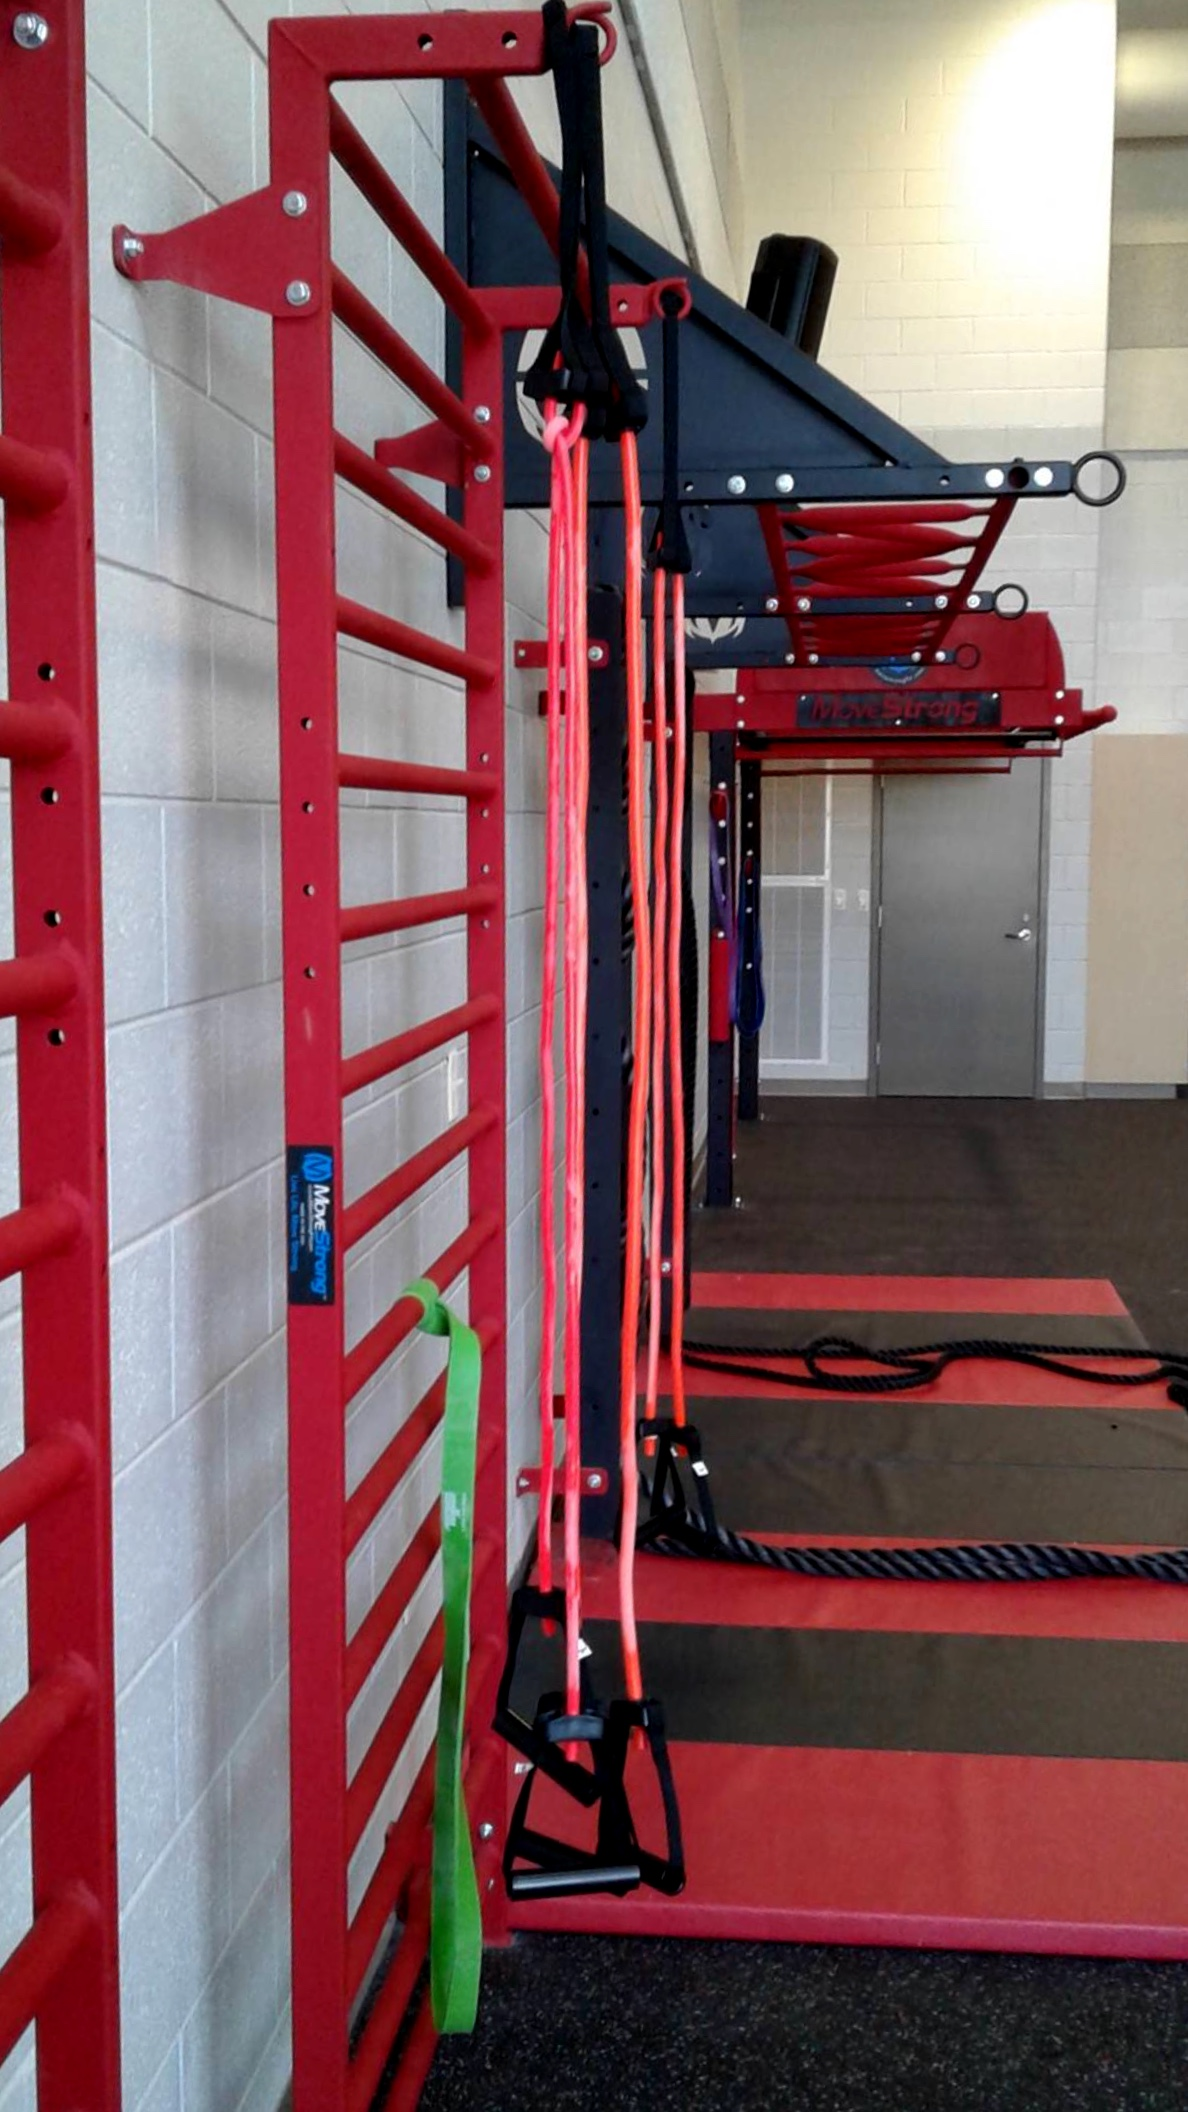 Stall Bars and resistance band stations